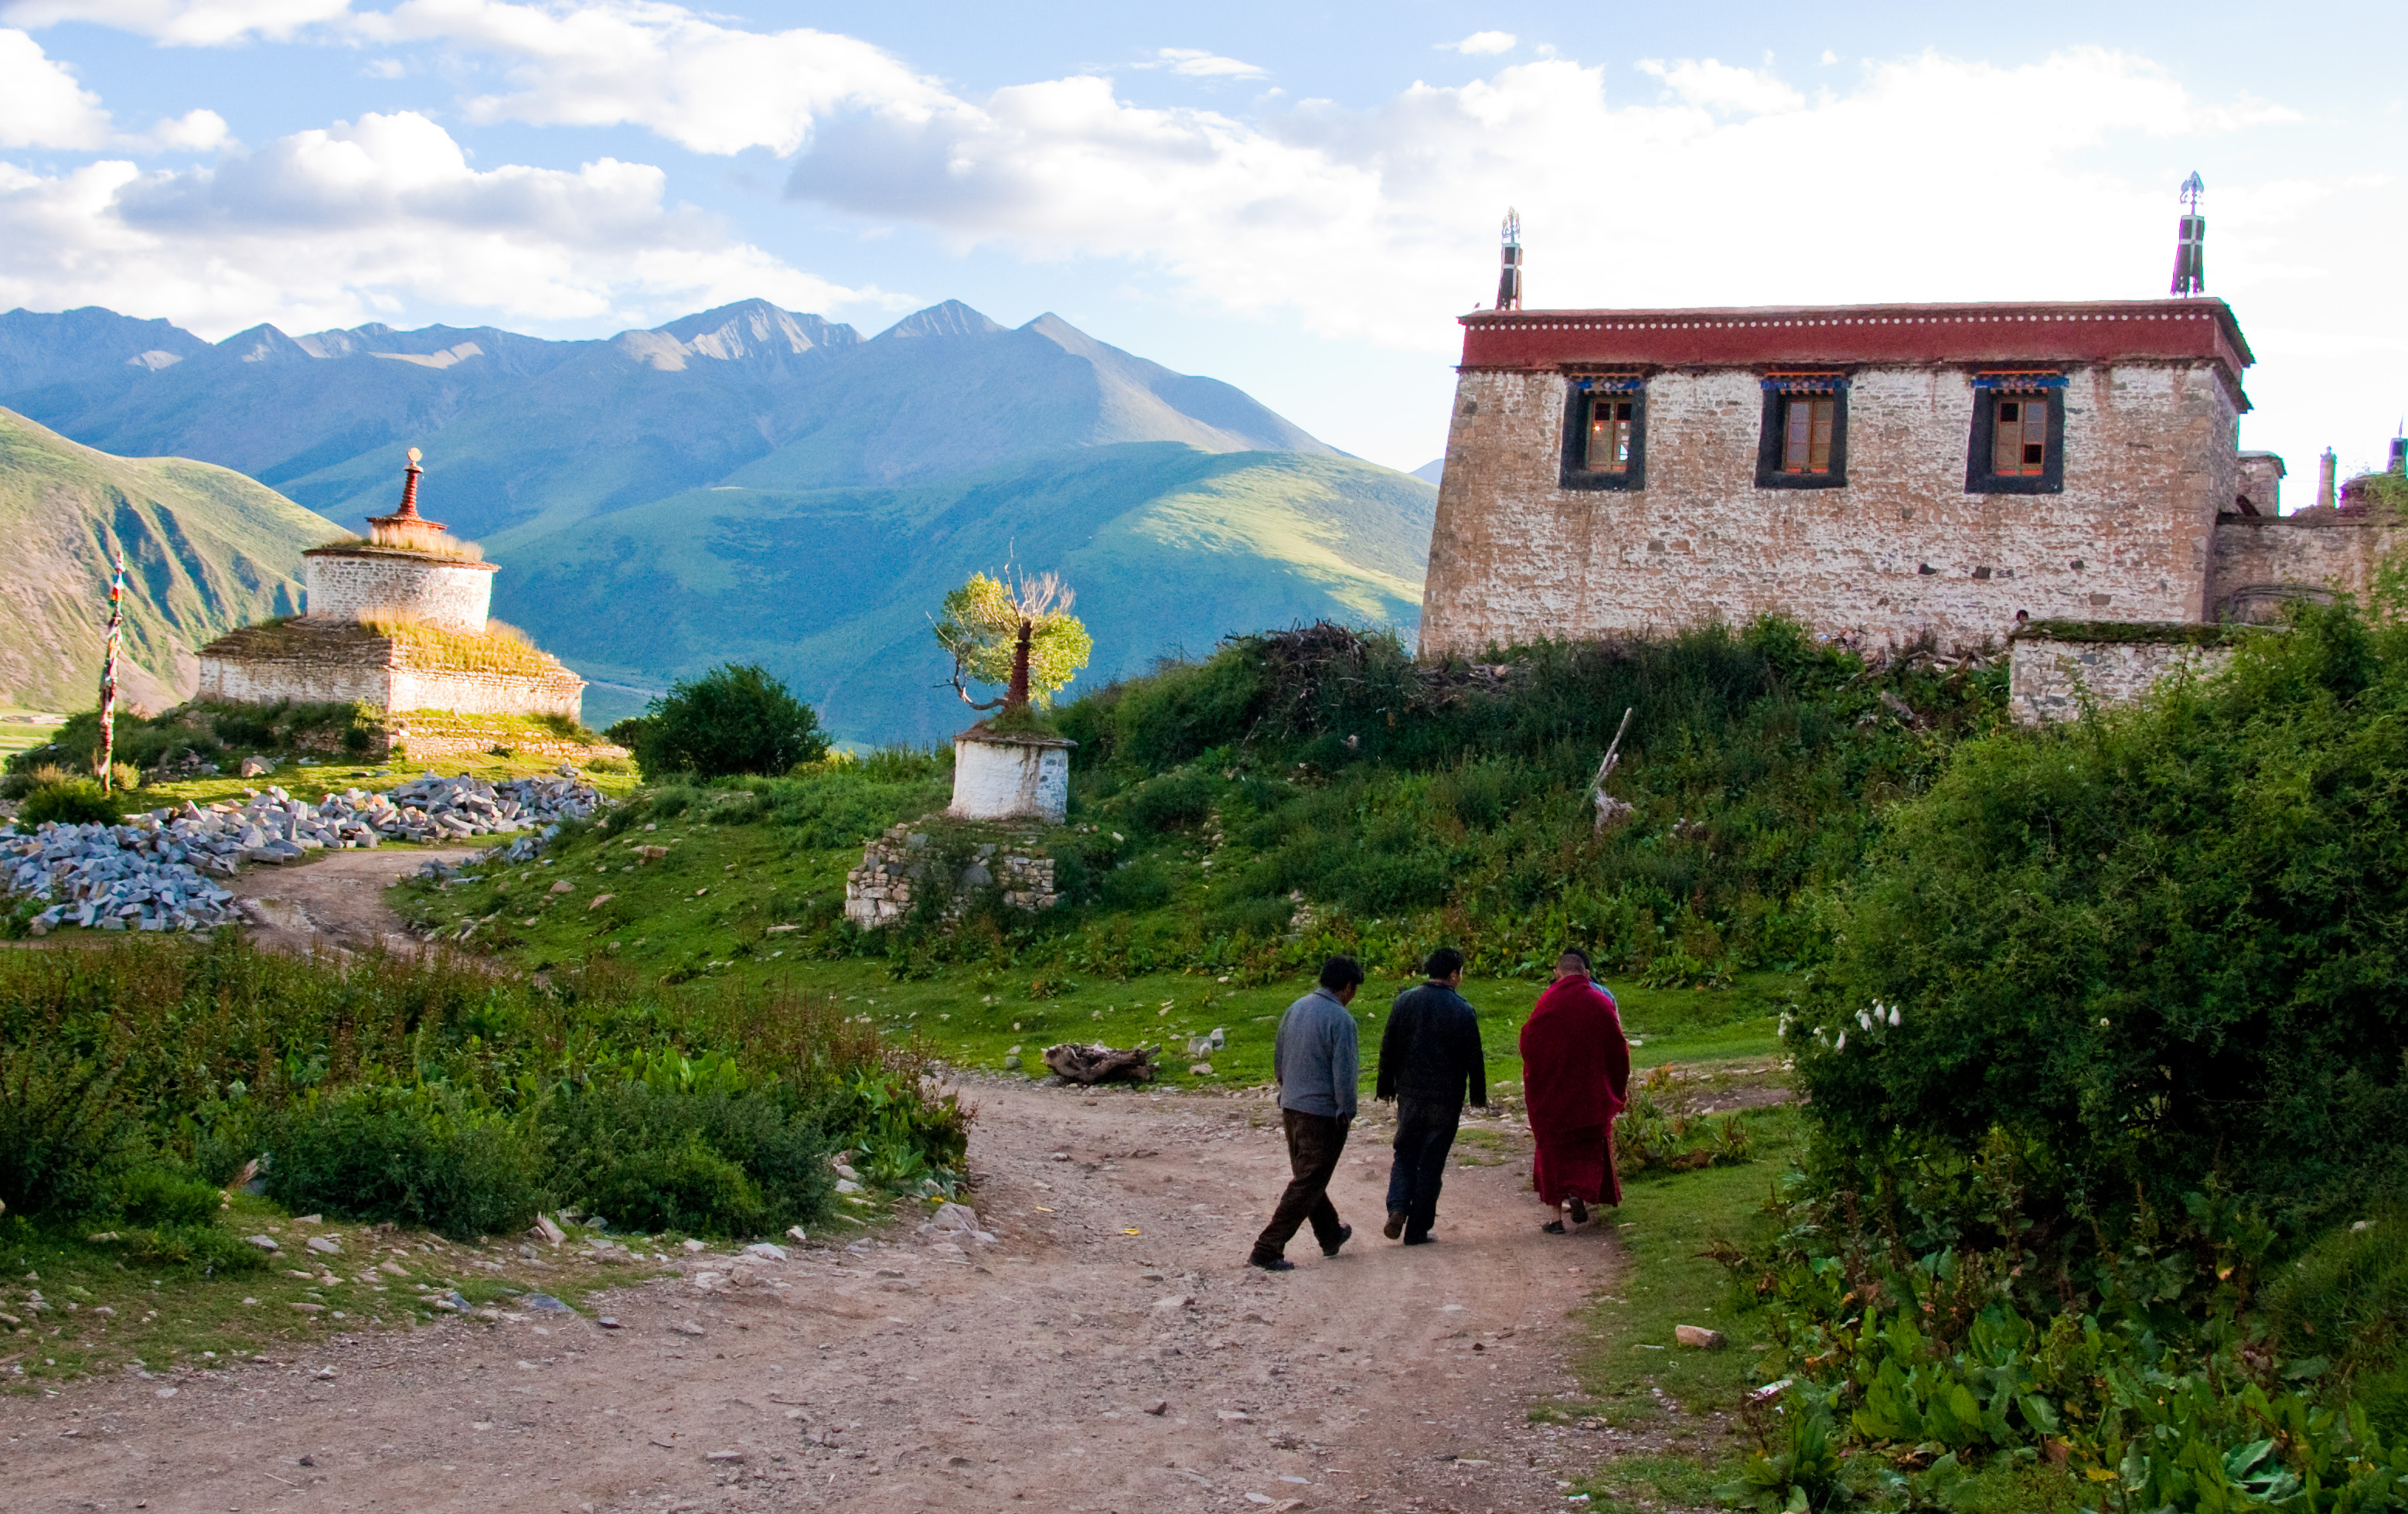 reting monastery in Lhasa prefecture in Tibet